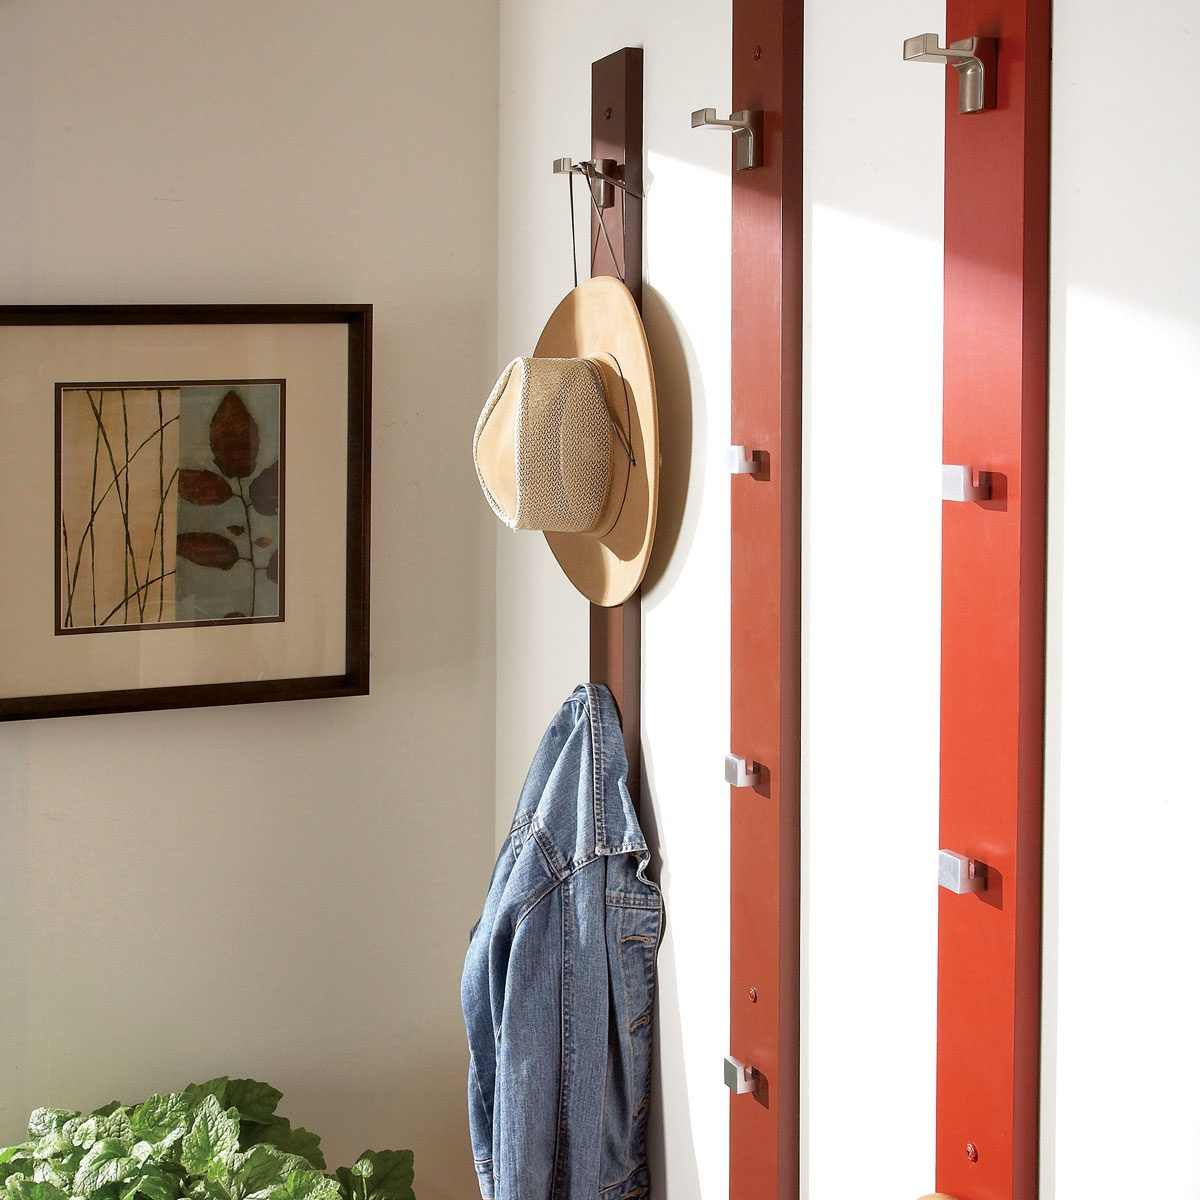 2. Wall Surface Mount Coat Racks